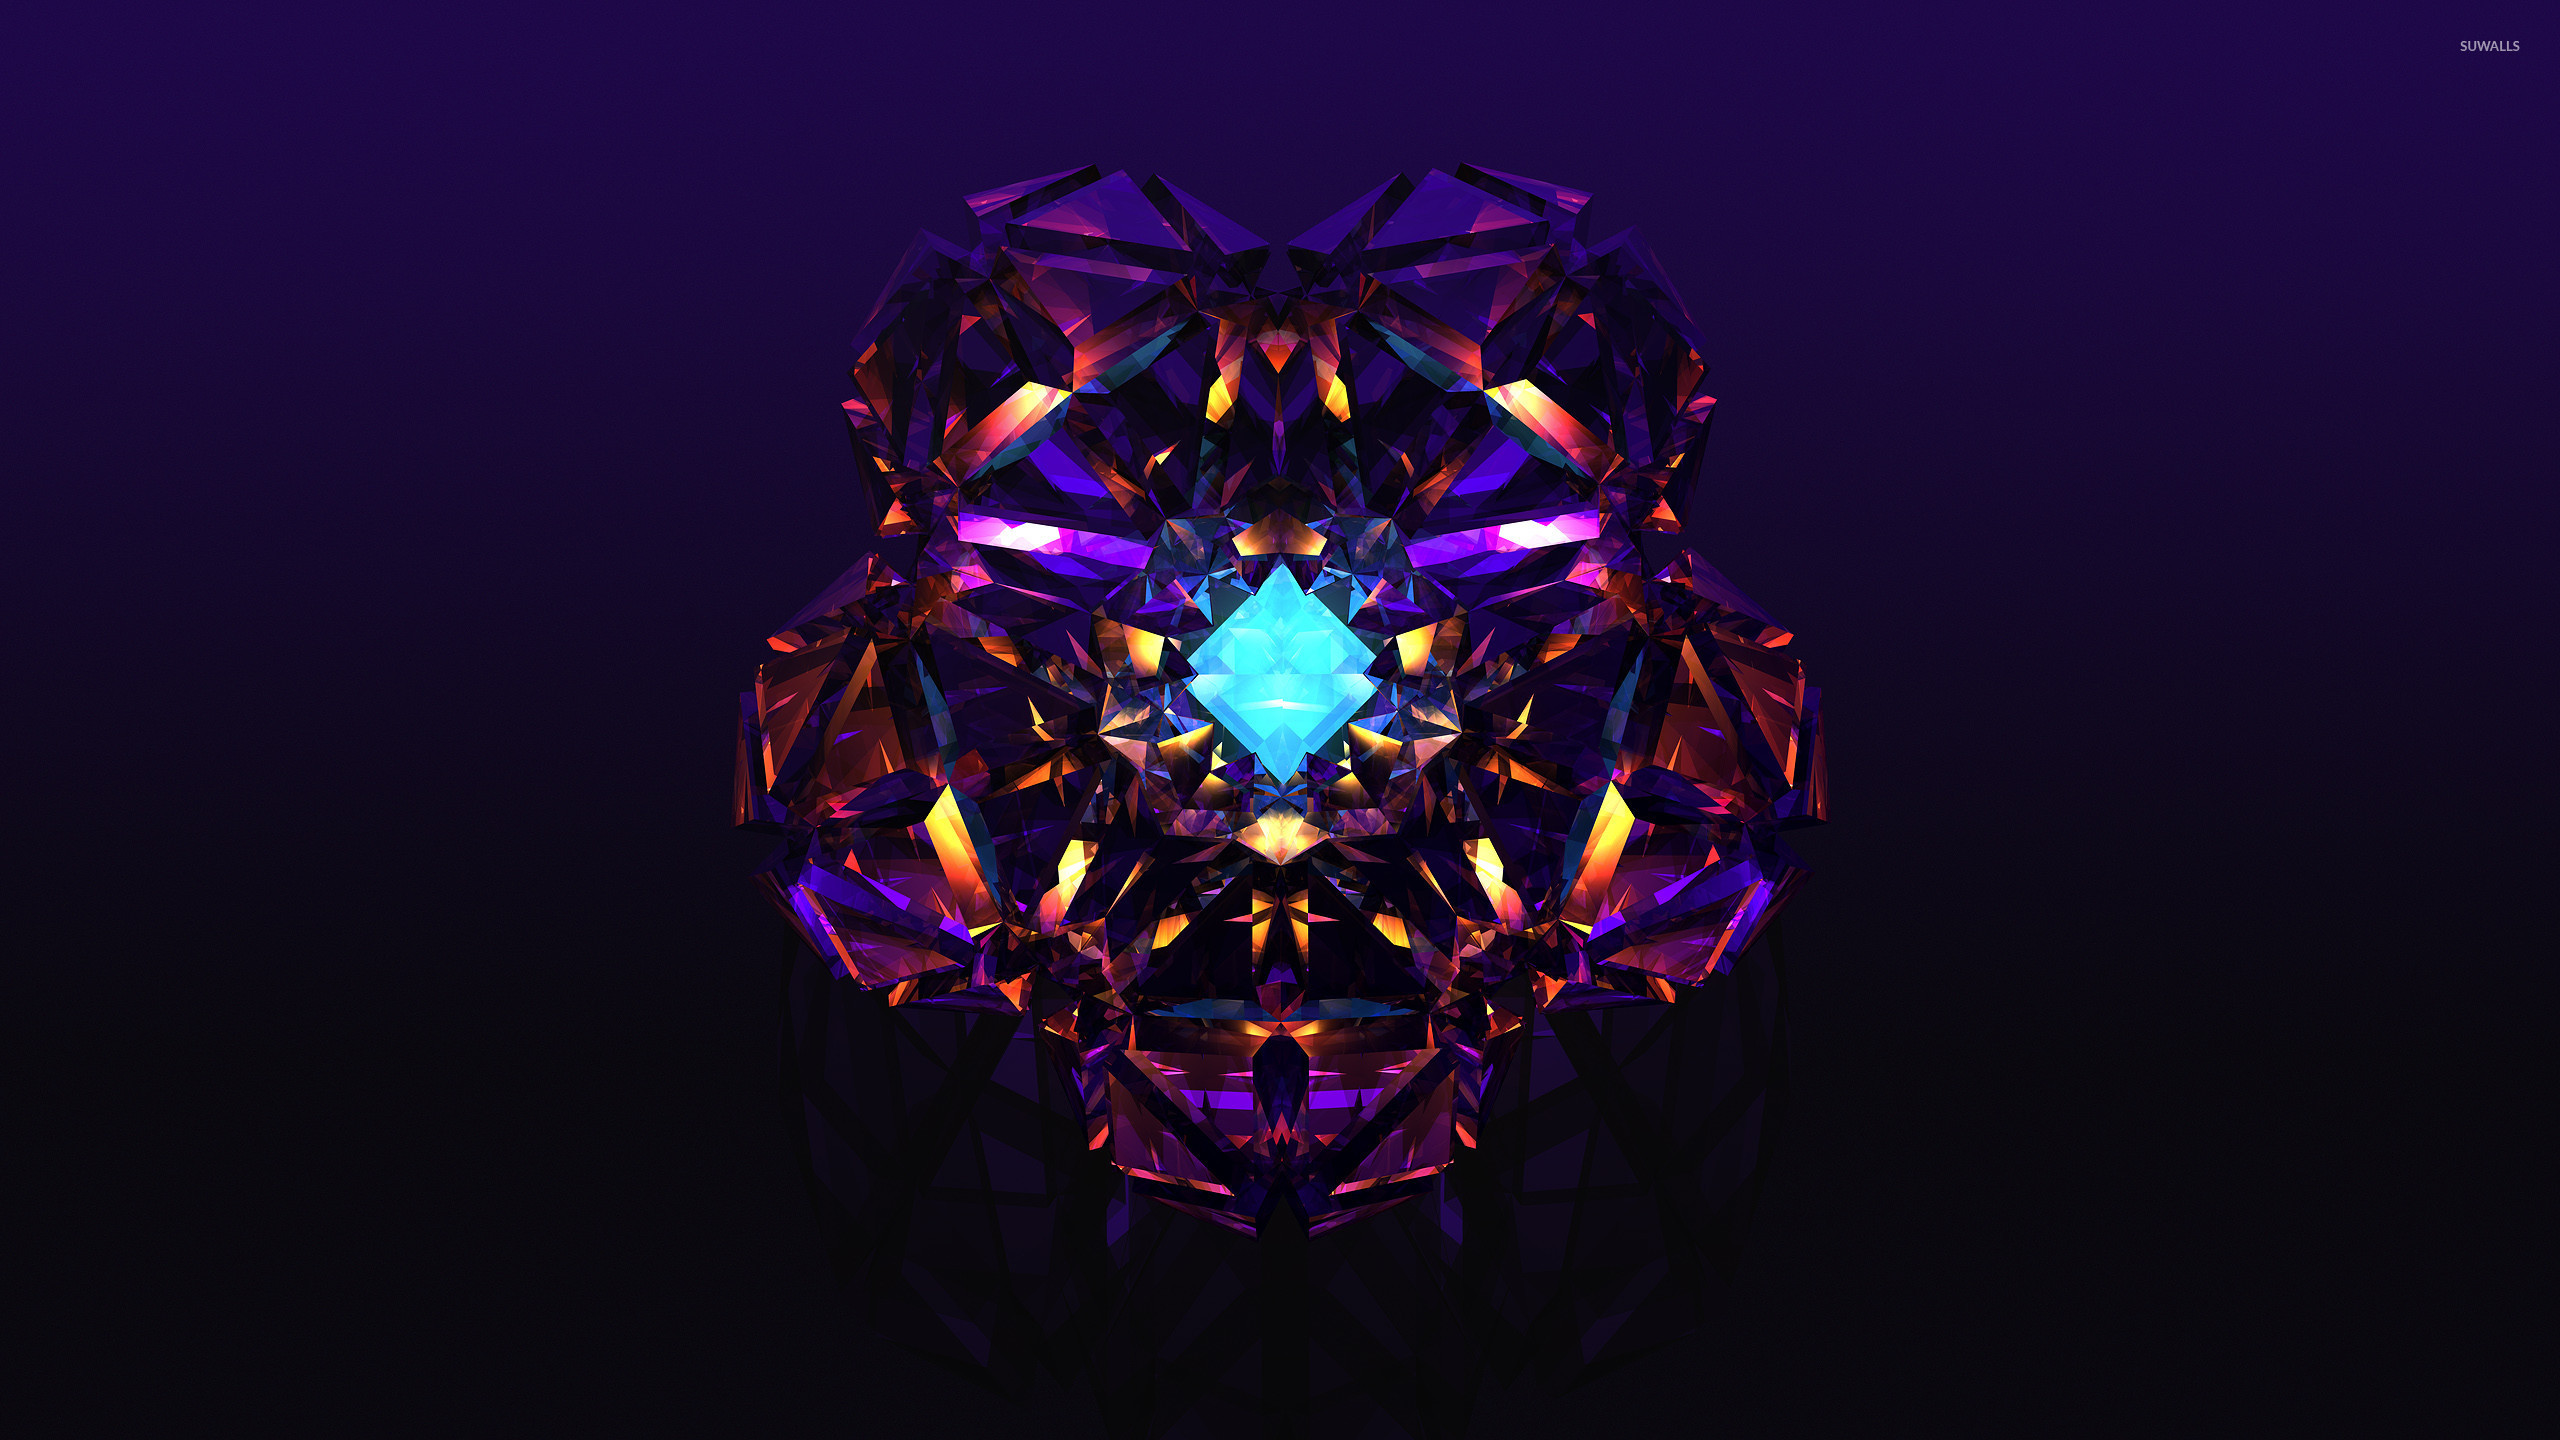 wallpapers abstract wallpaper purple diamond